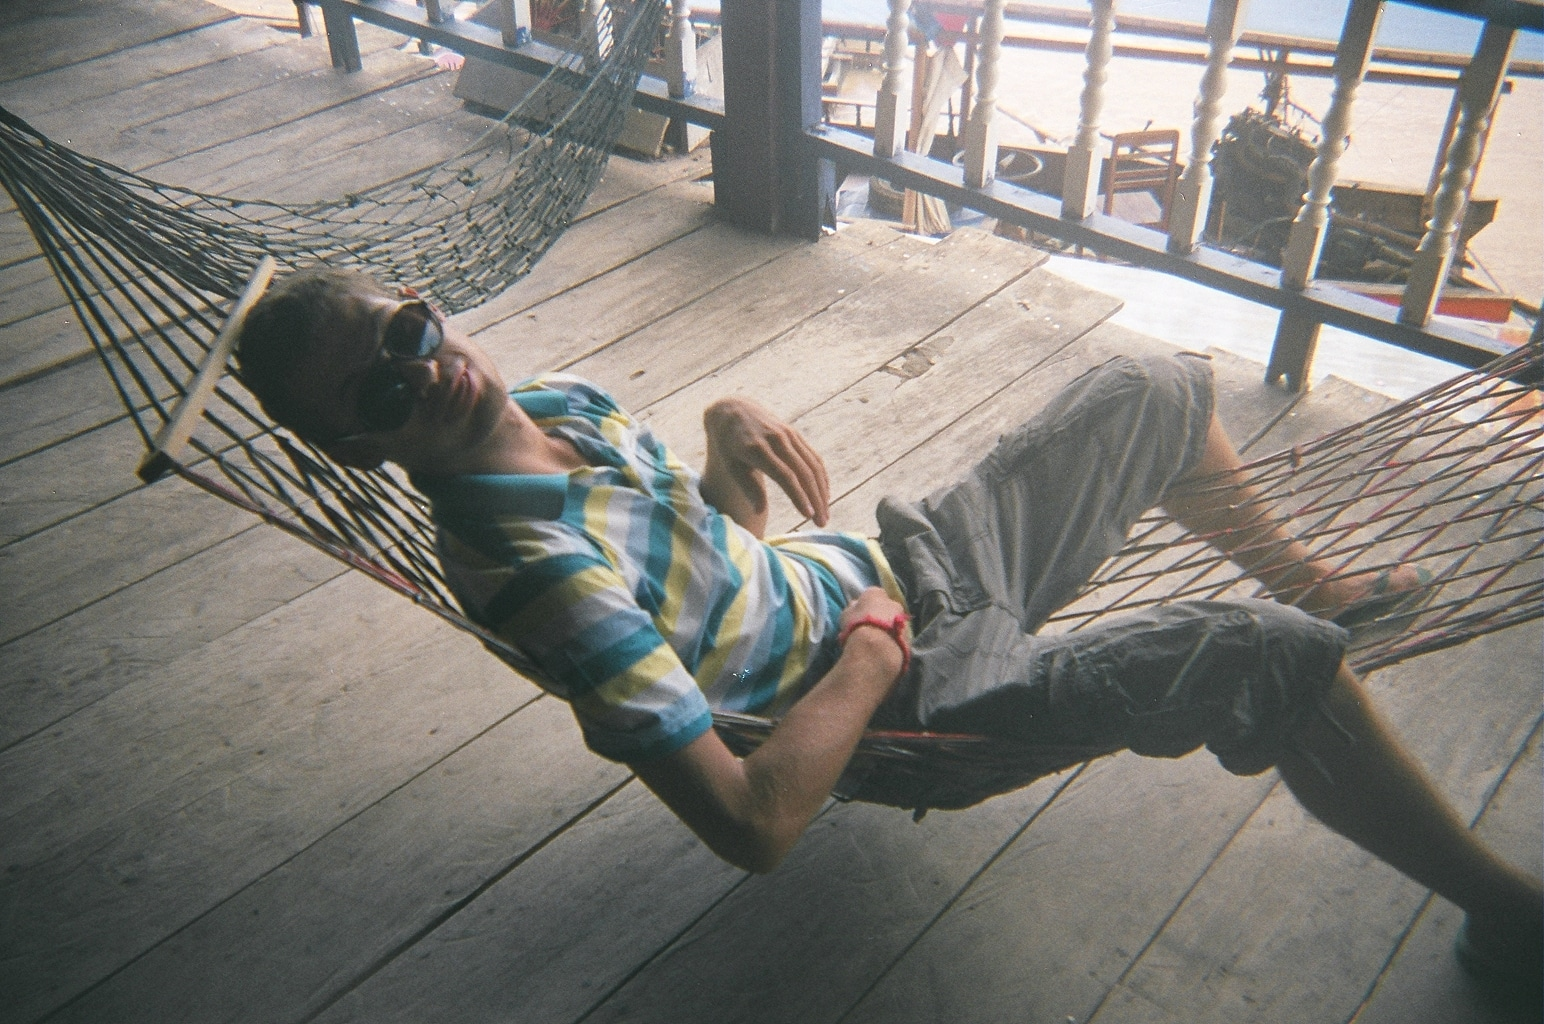 Sebastiaan in a hammock in the 4,000 islands of Laos - Lost With Purpose